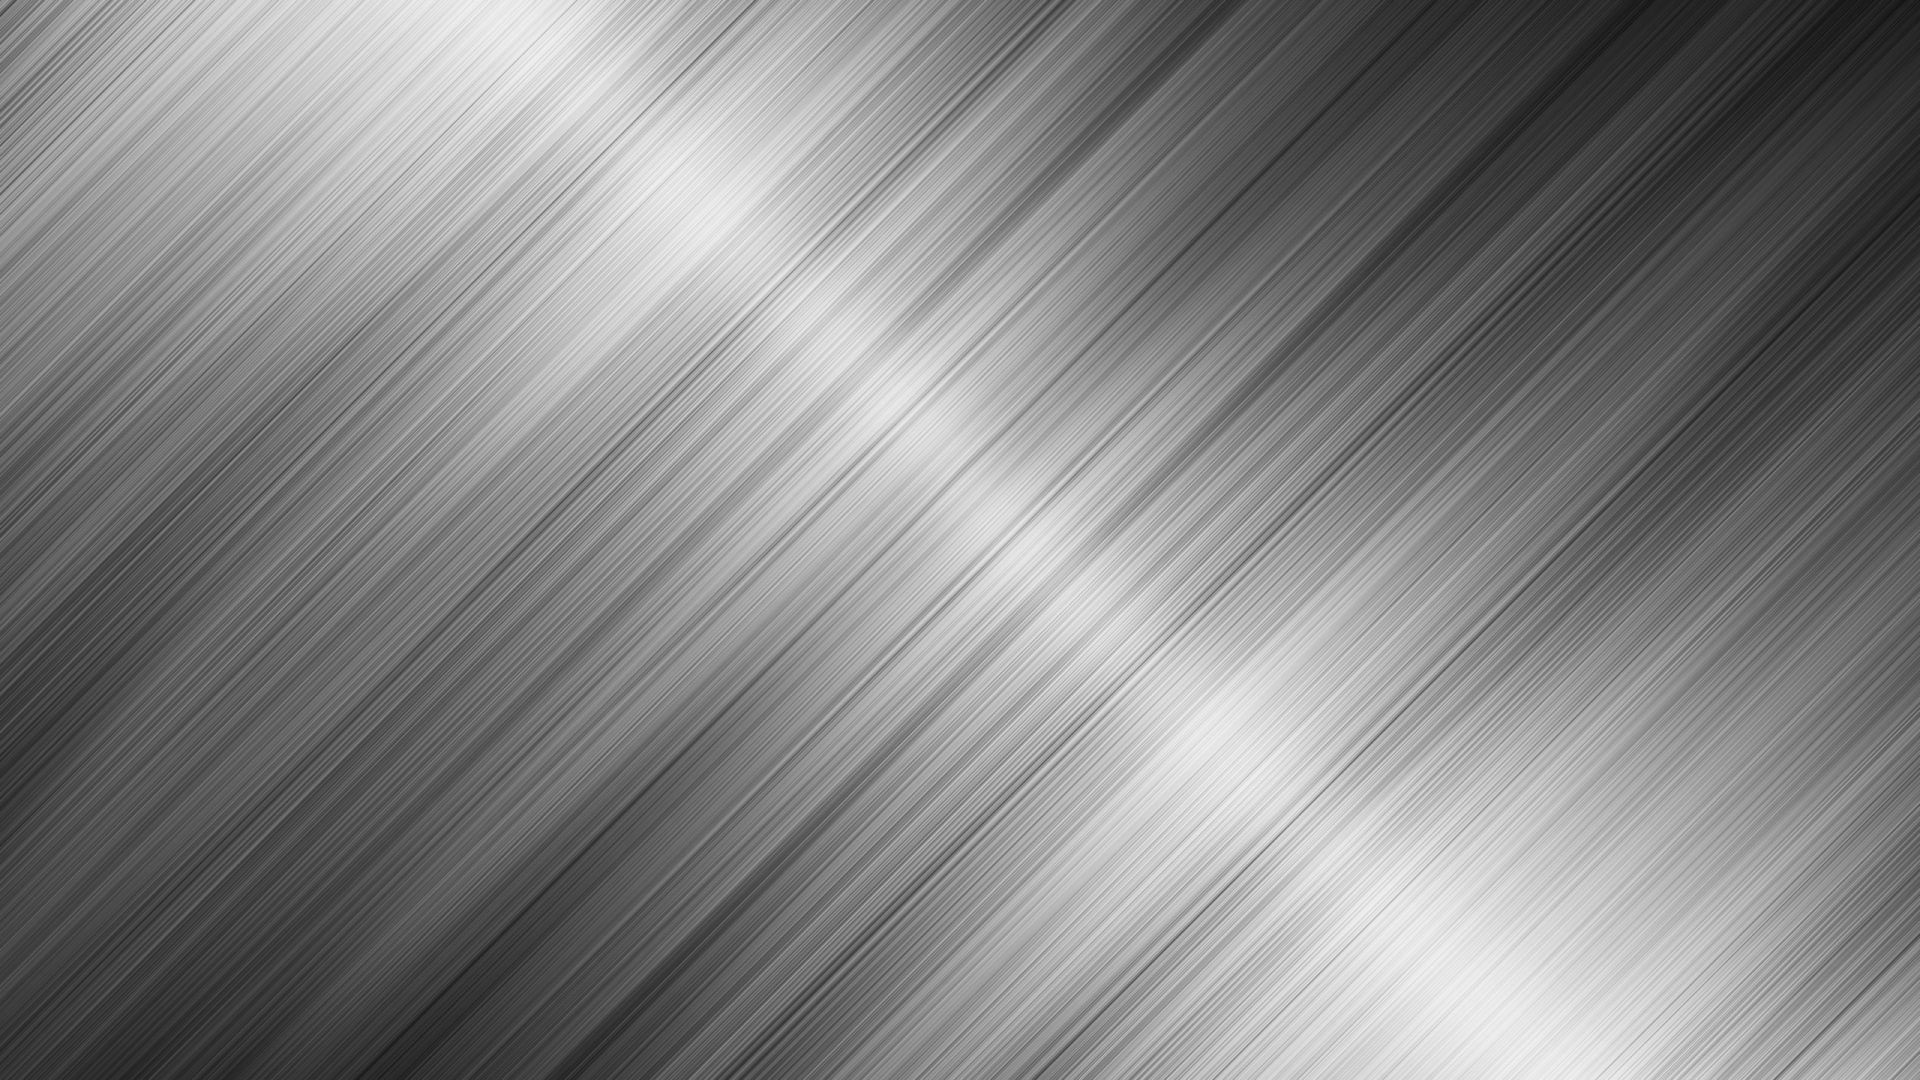 1920x1080 Black and Silver Metallic Wallpaper